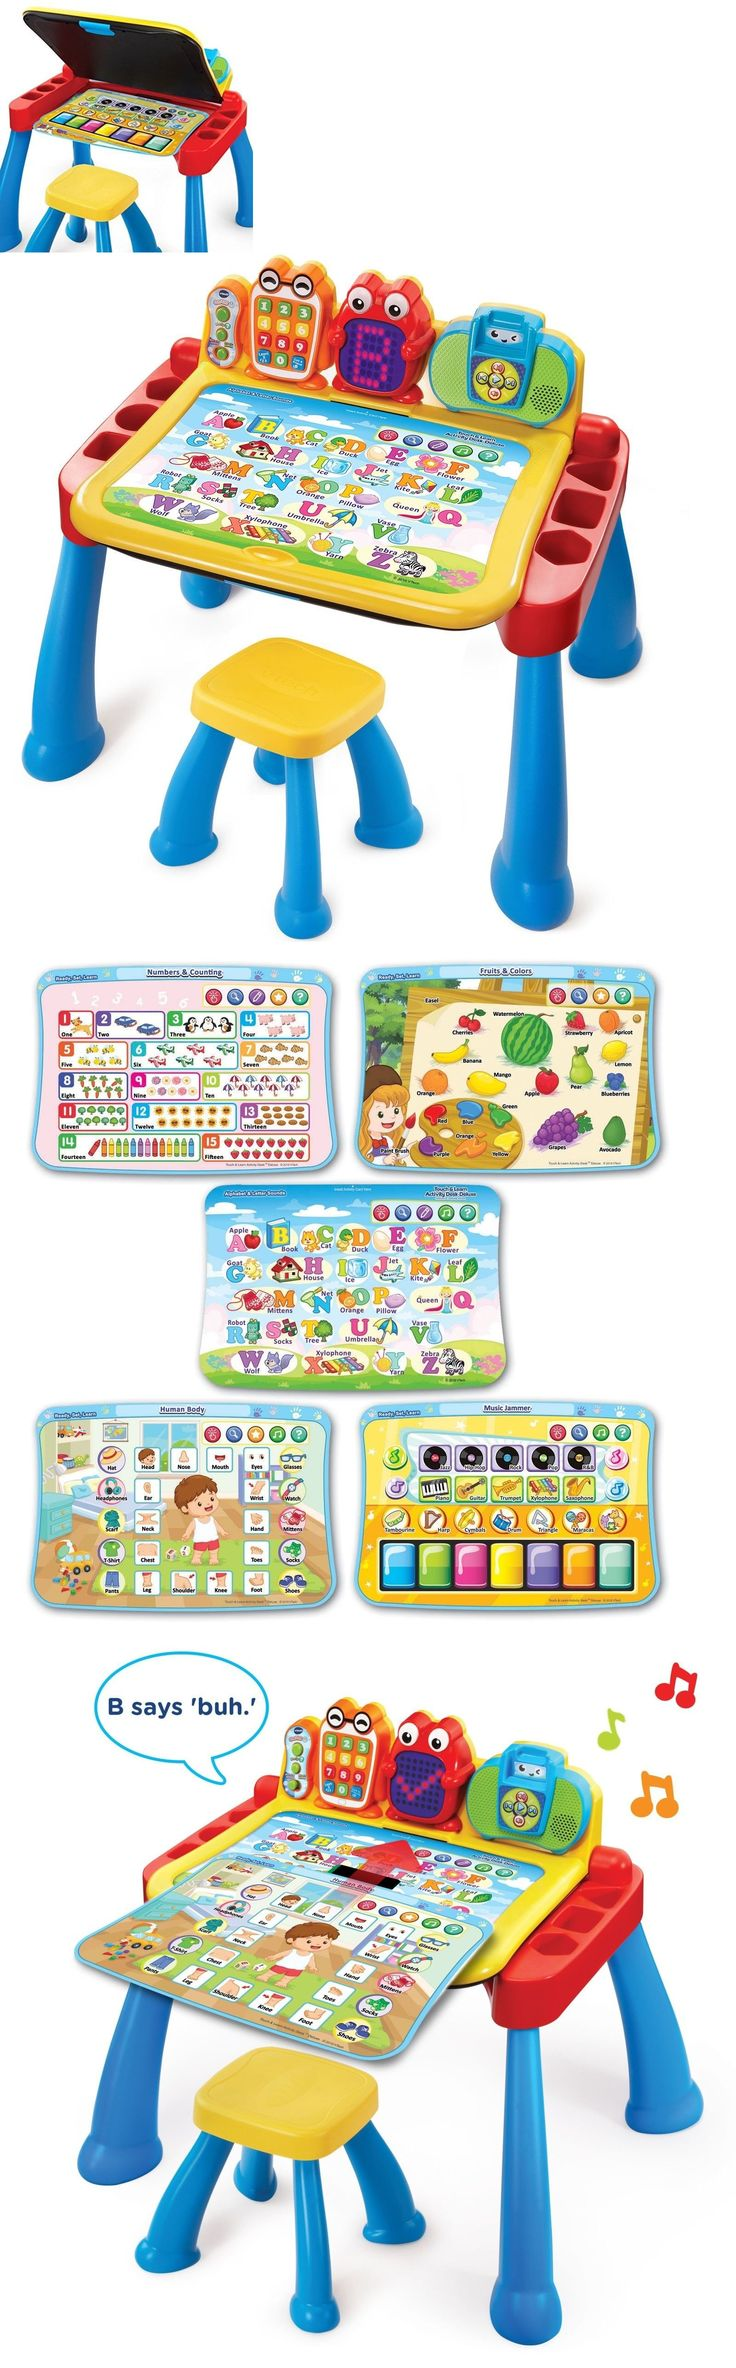 Learning Systems 158695: Vtech Learning Play Touch Learn Activity Toddler Desk Educational Table Kids Toy -> BUY IT NOW ONLY: $55.34 on eBay!